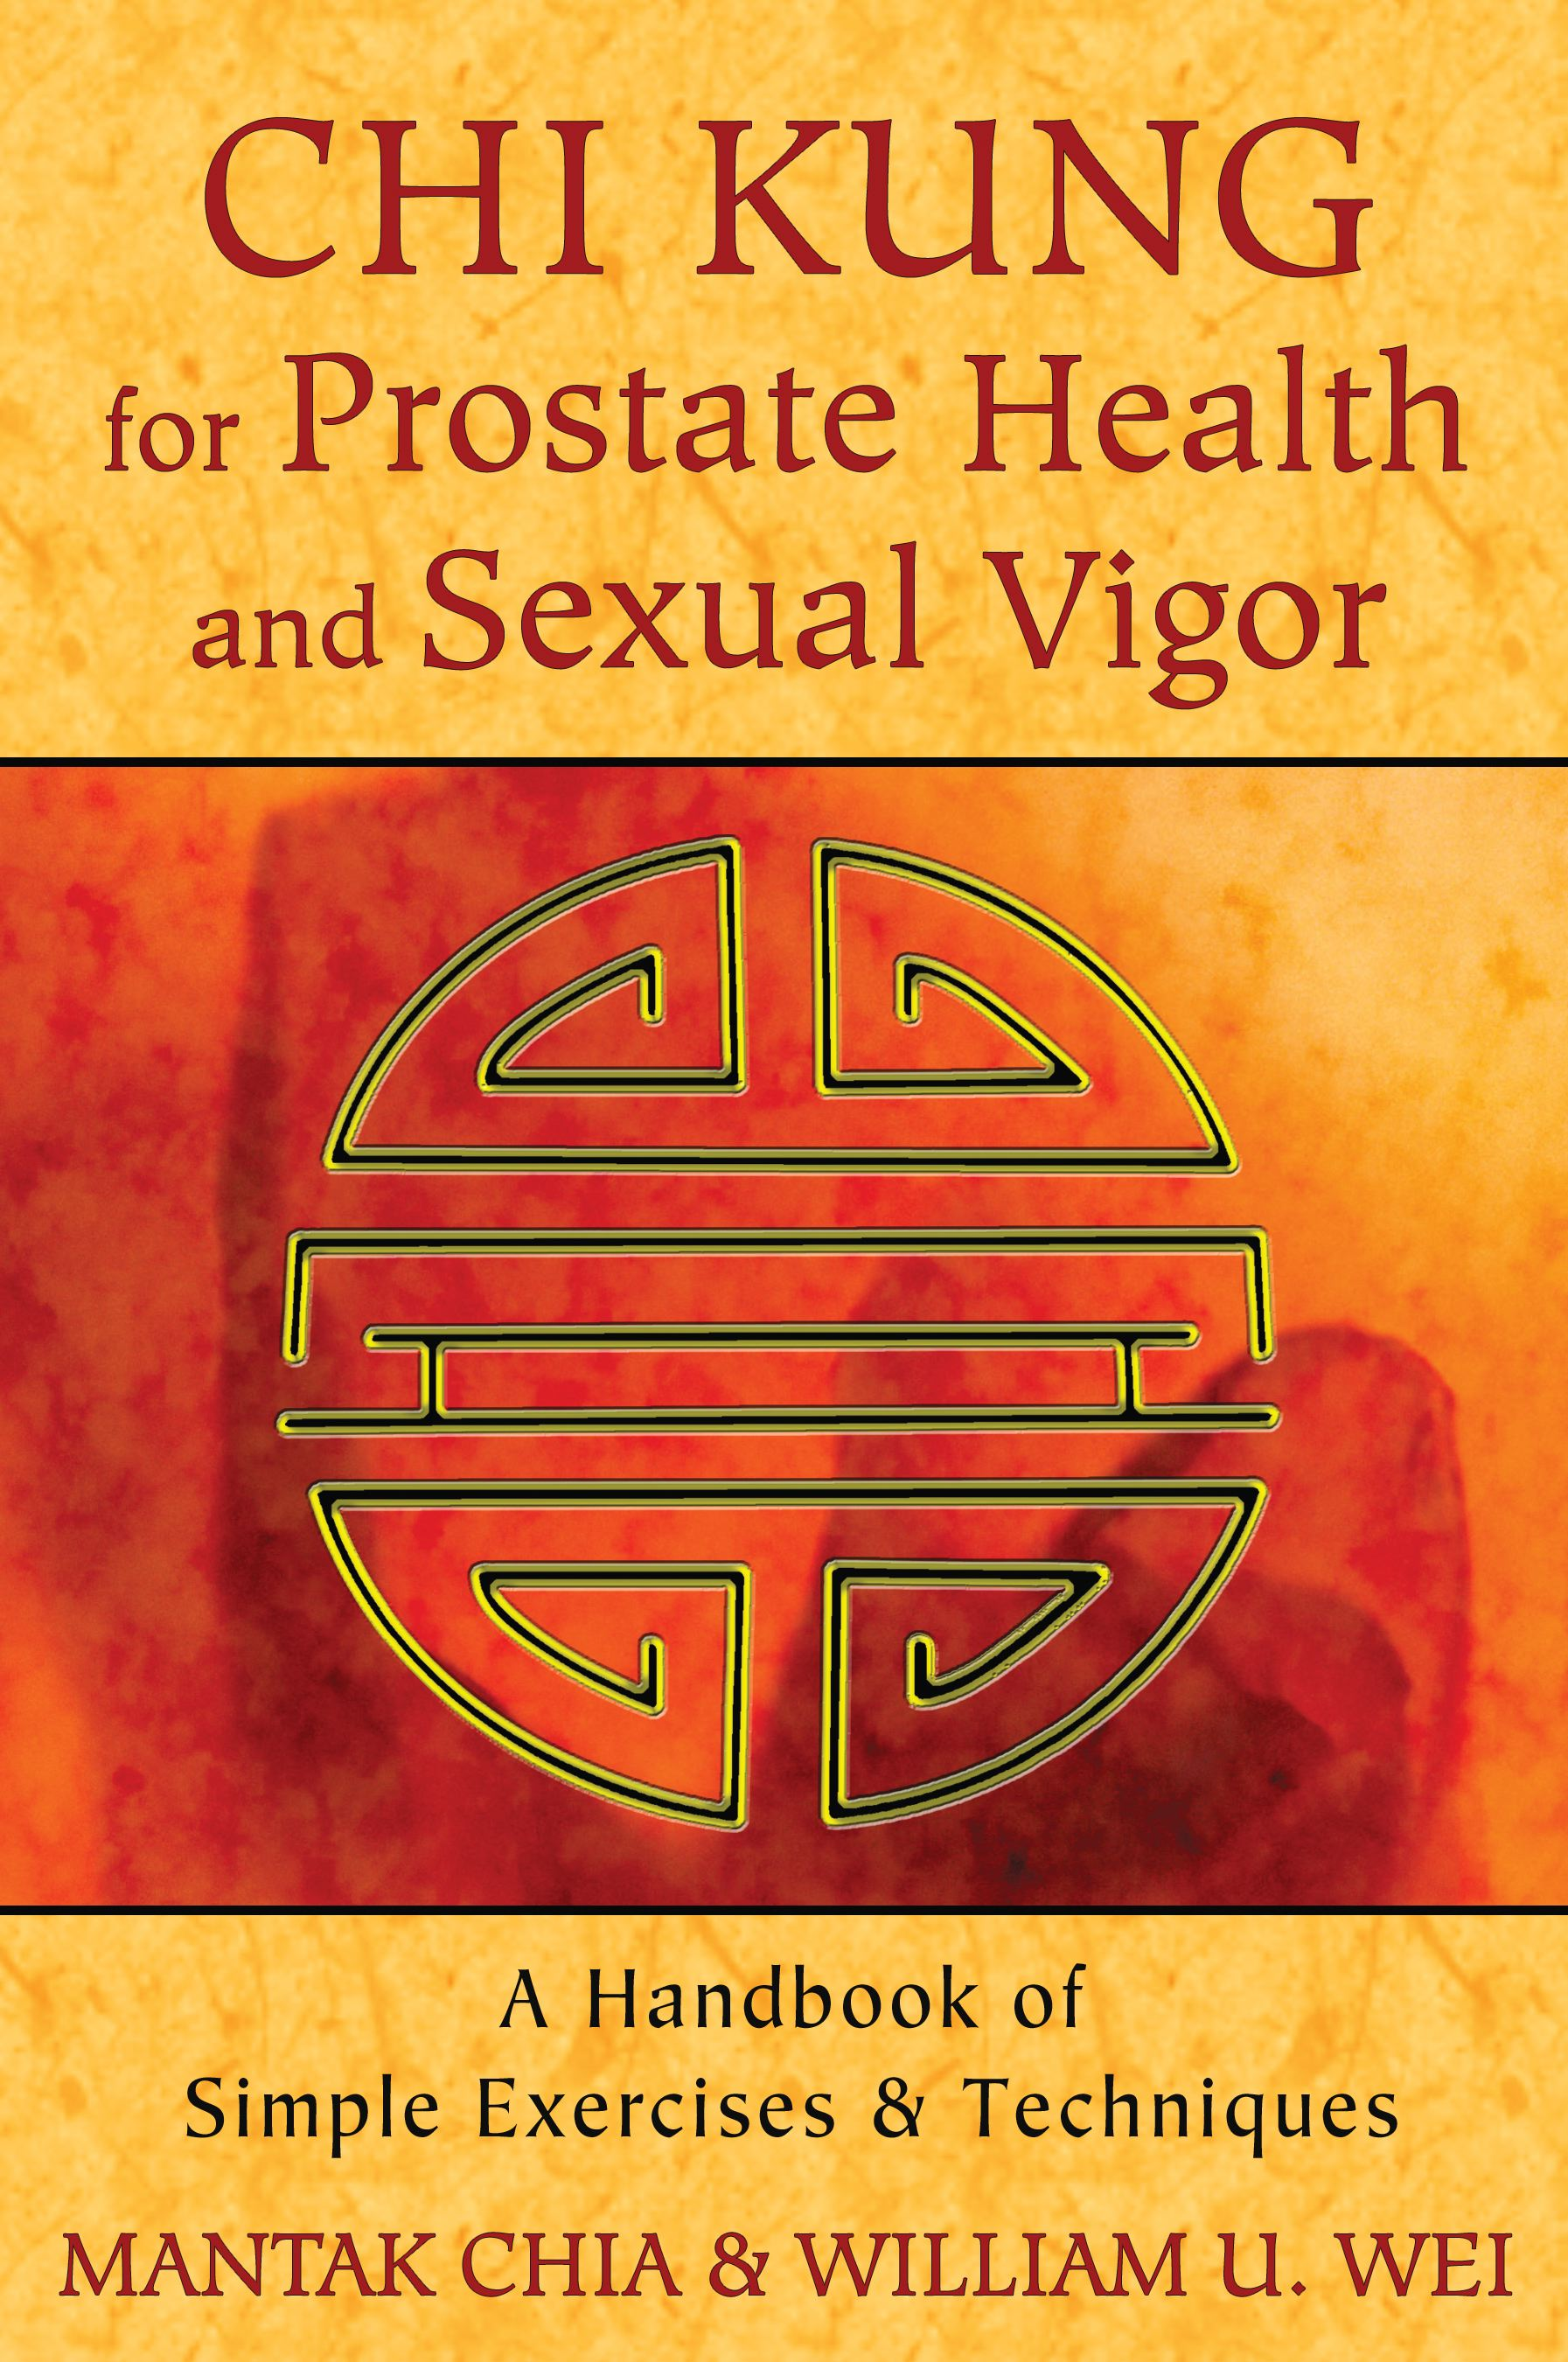 Chi-kung-for-prostate-health-and-sexual-vigor-9781620552278_hr